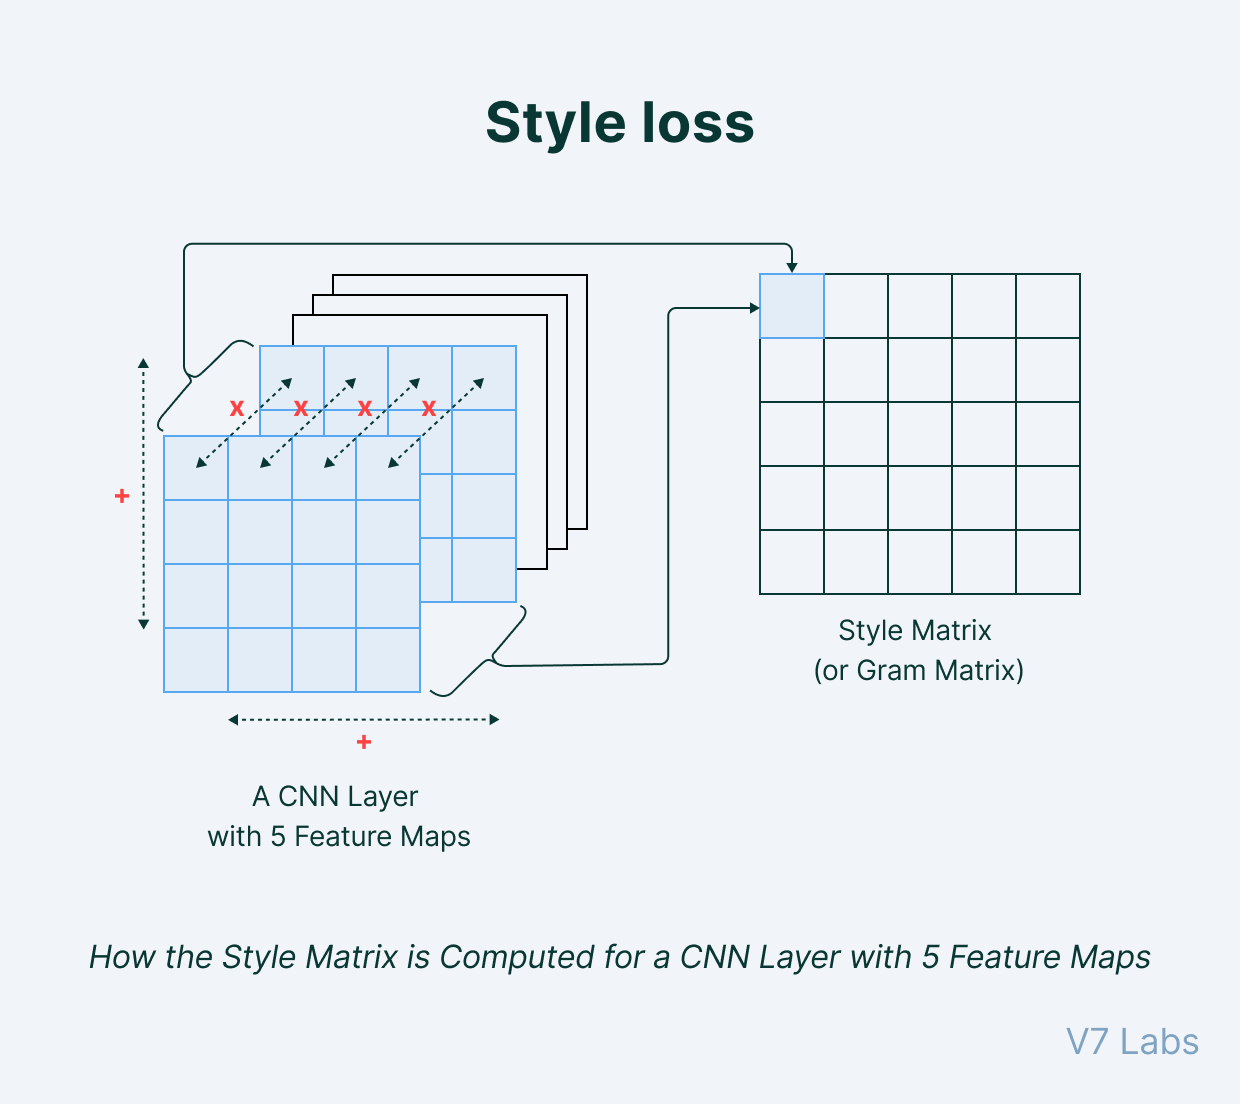 Style loss structure